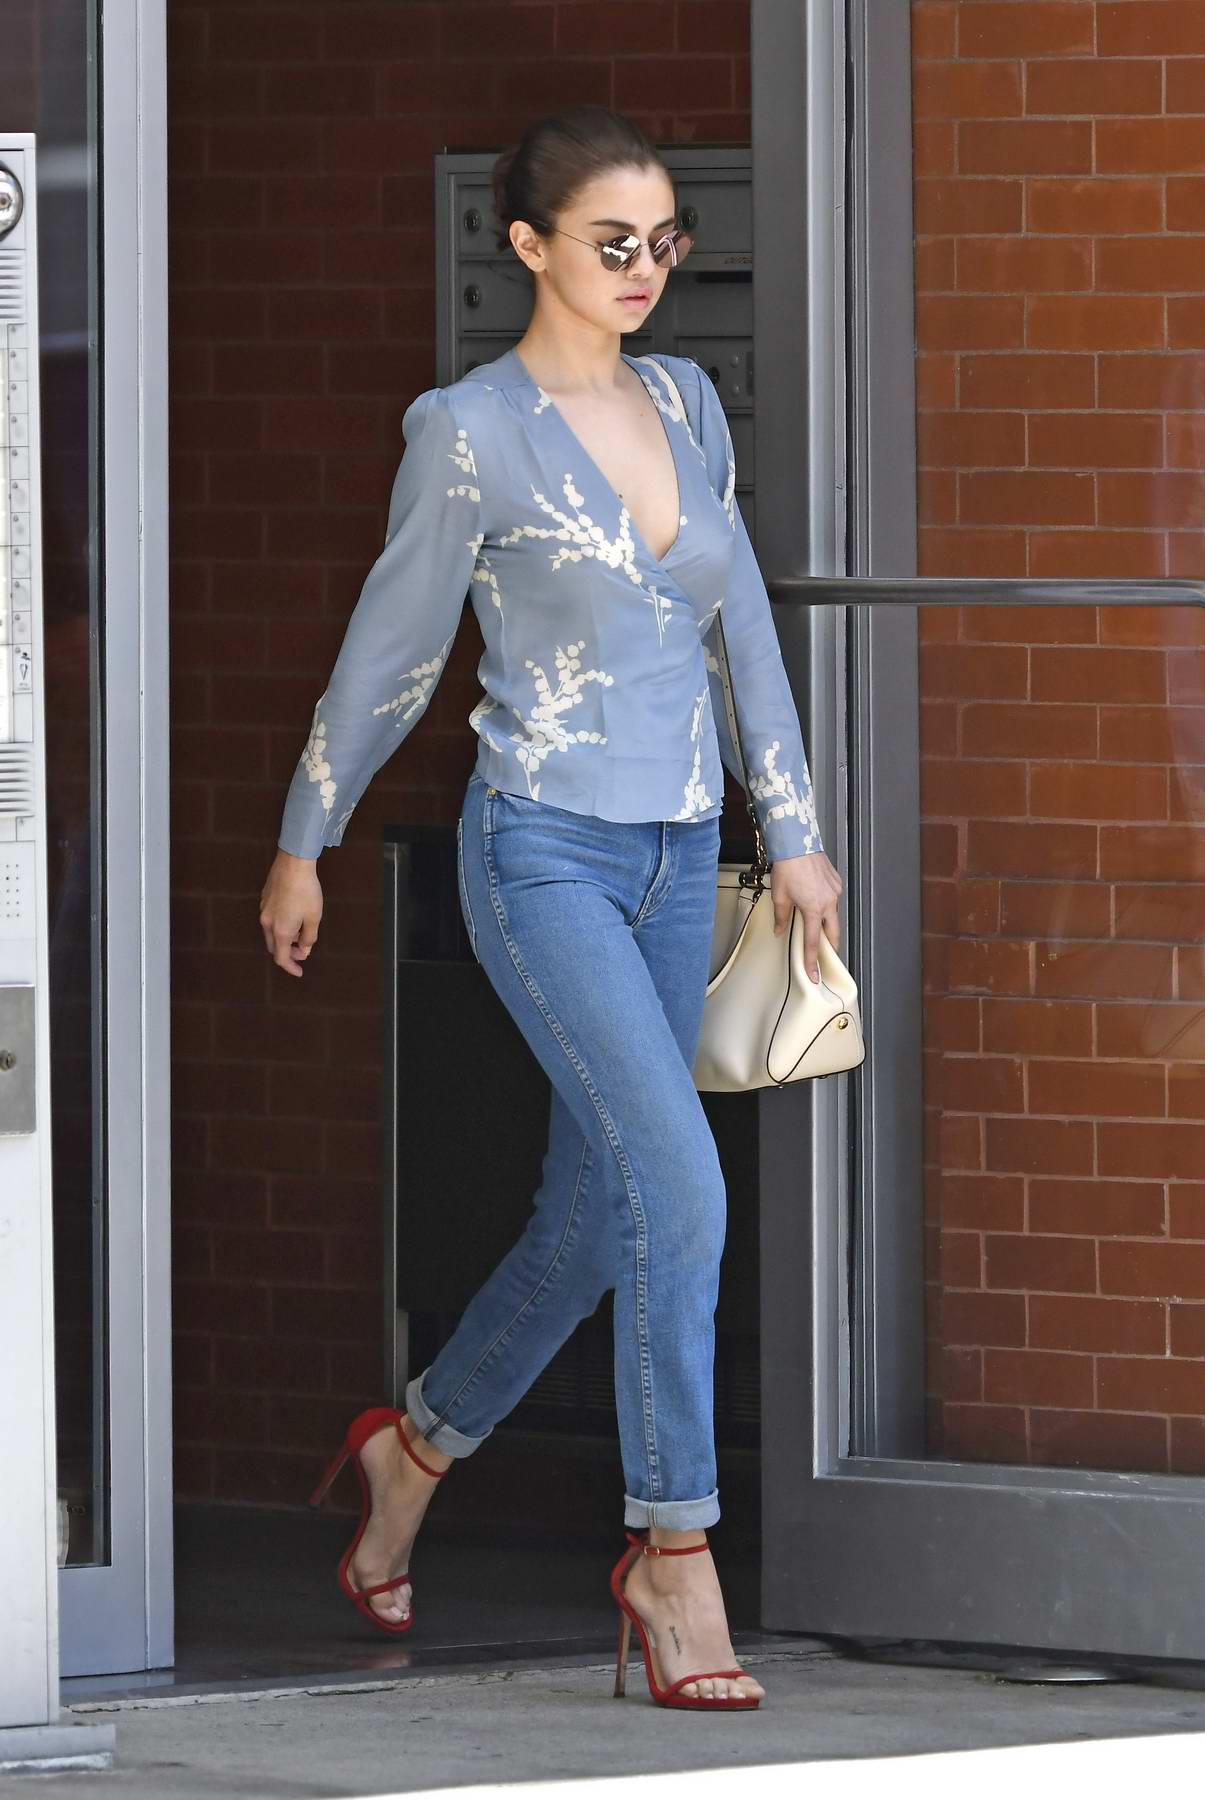 Selena Gomez wears denim and a blue floral top on her way to the Woody Allen film-set in New York City